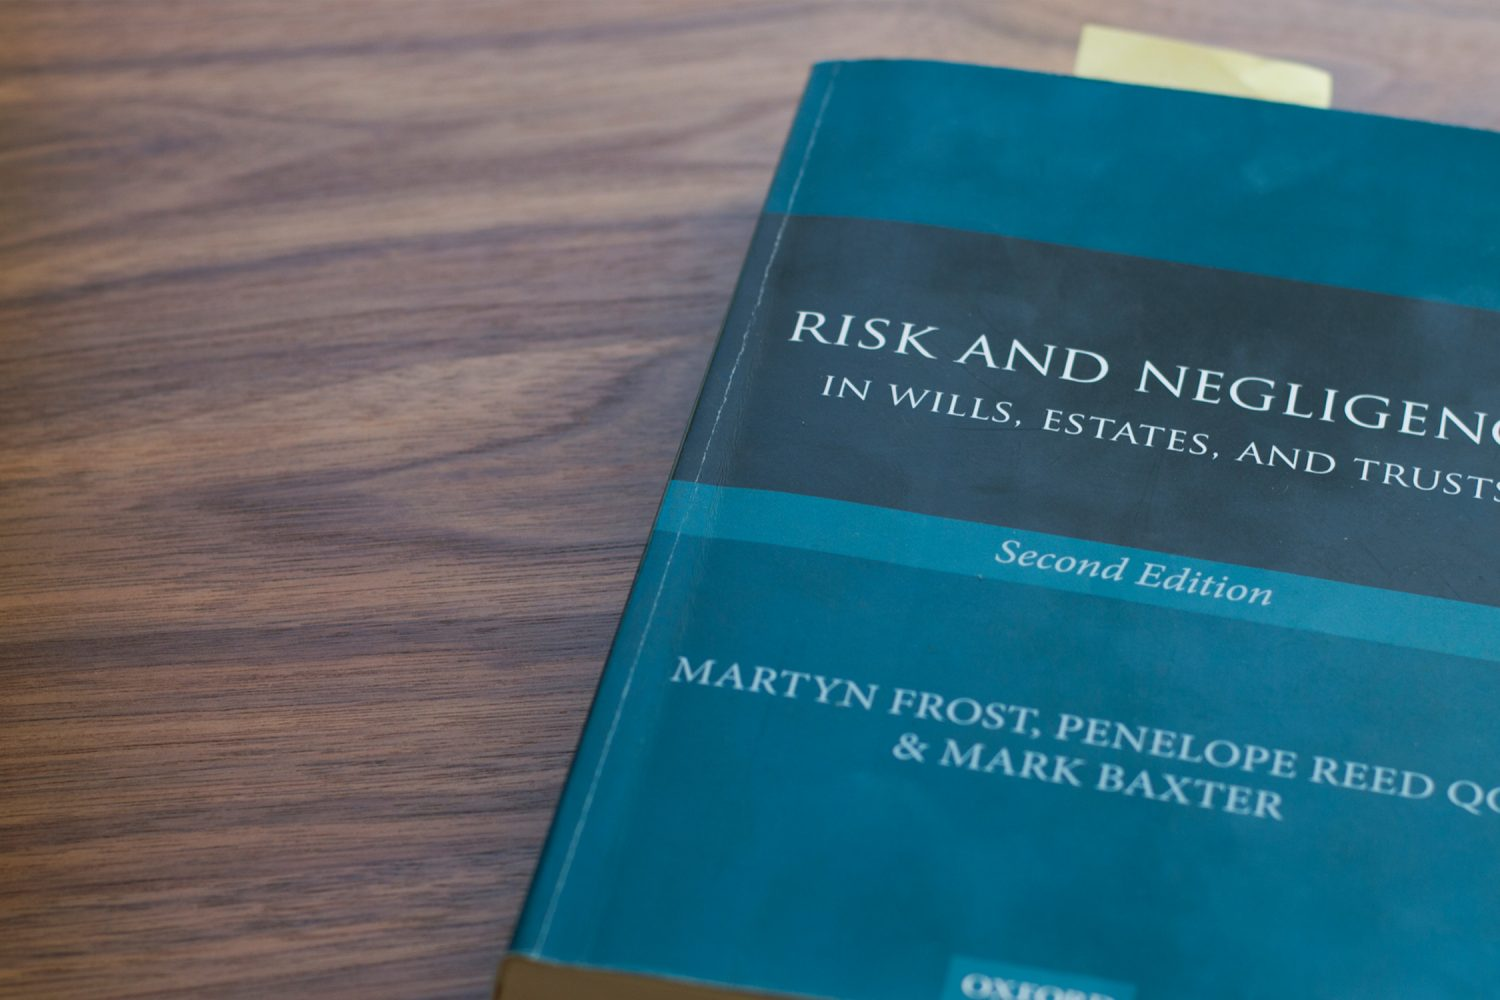 Risk and Negligence in Wills, Estates and Trusts